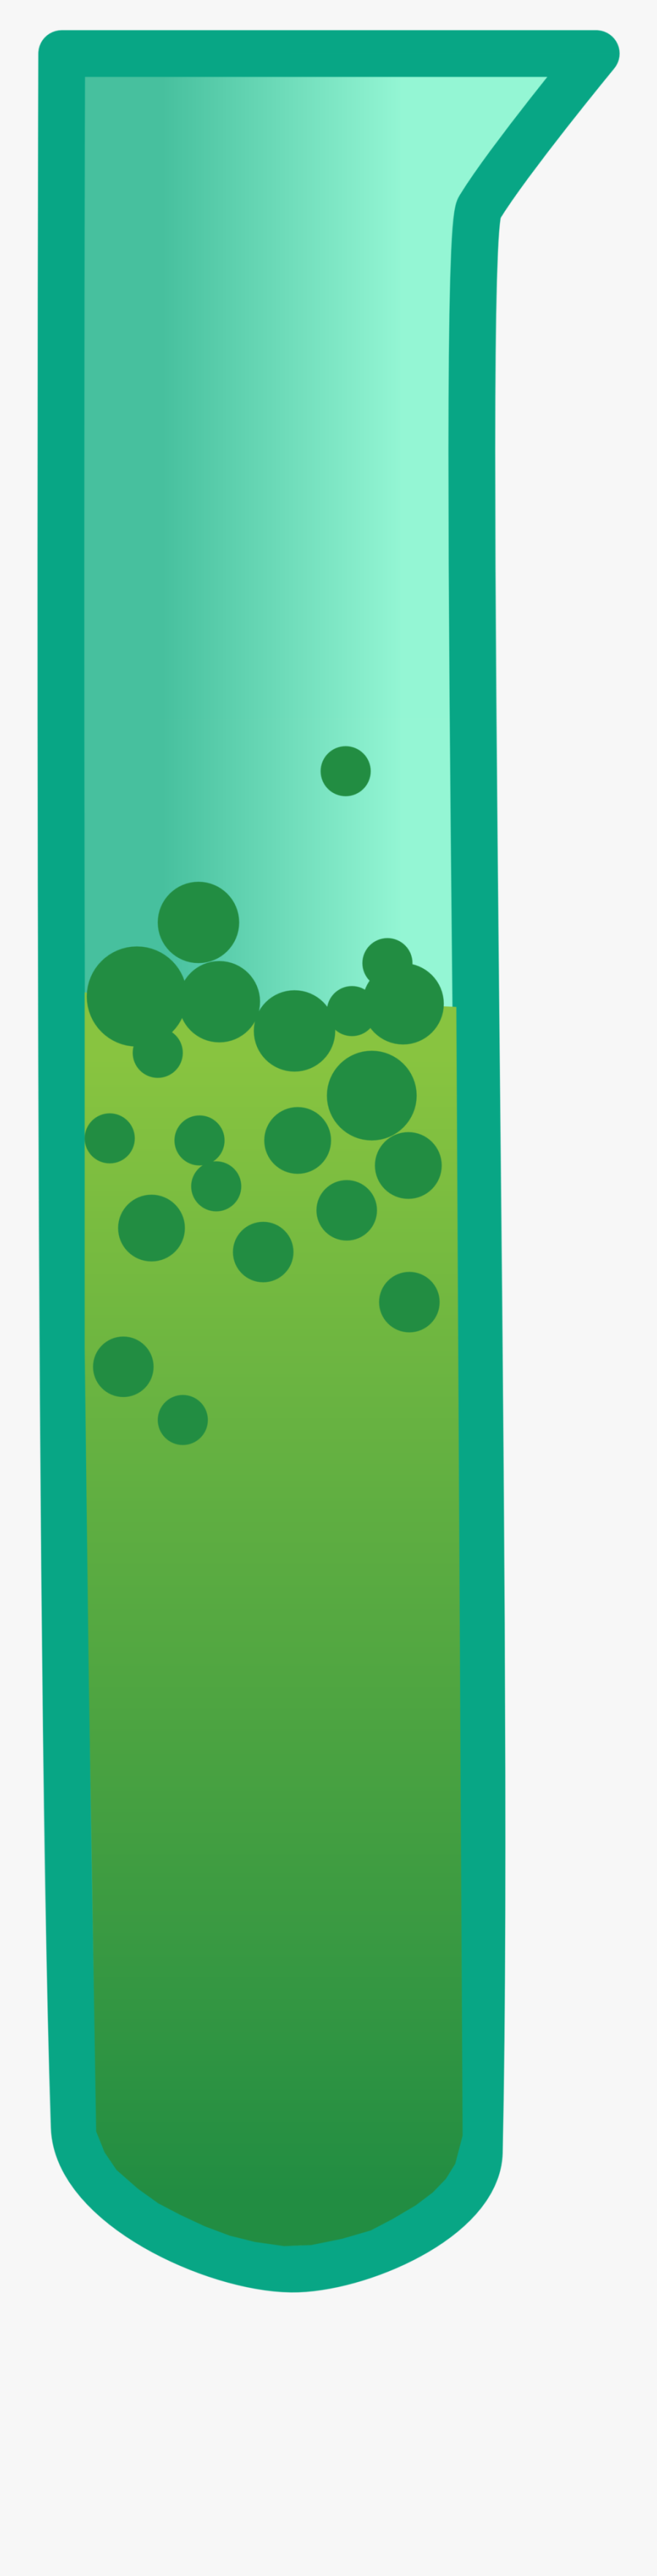 Bubbling Test Tube Animation, Transparent Clipart